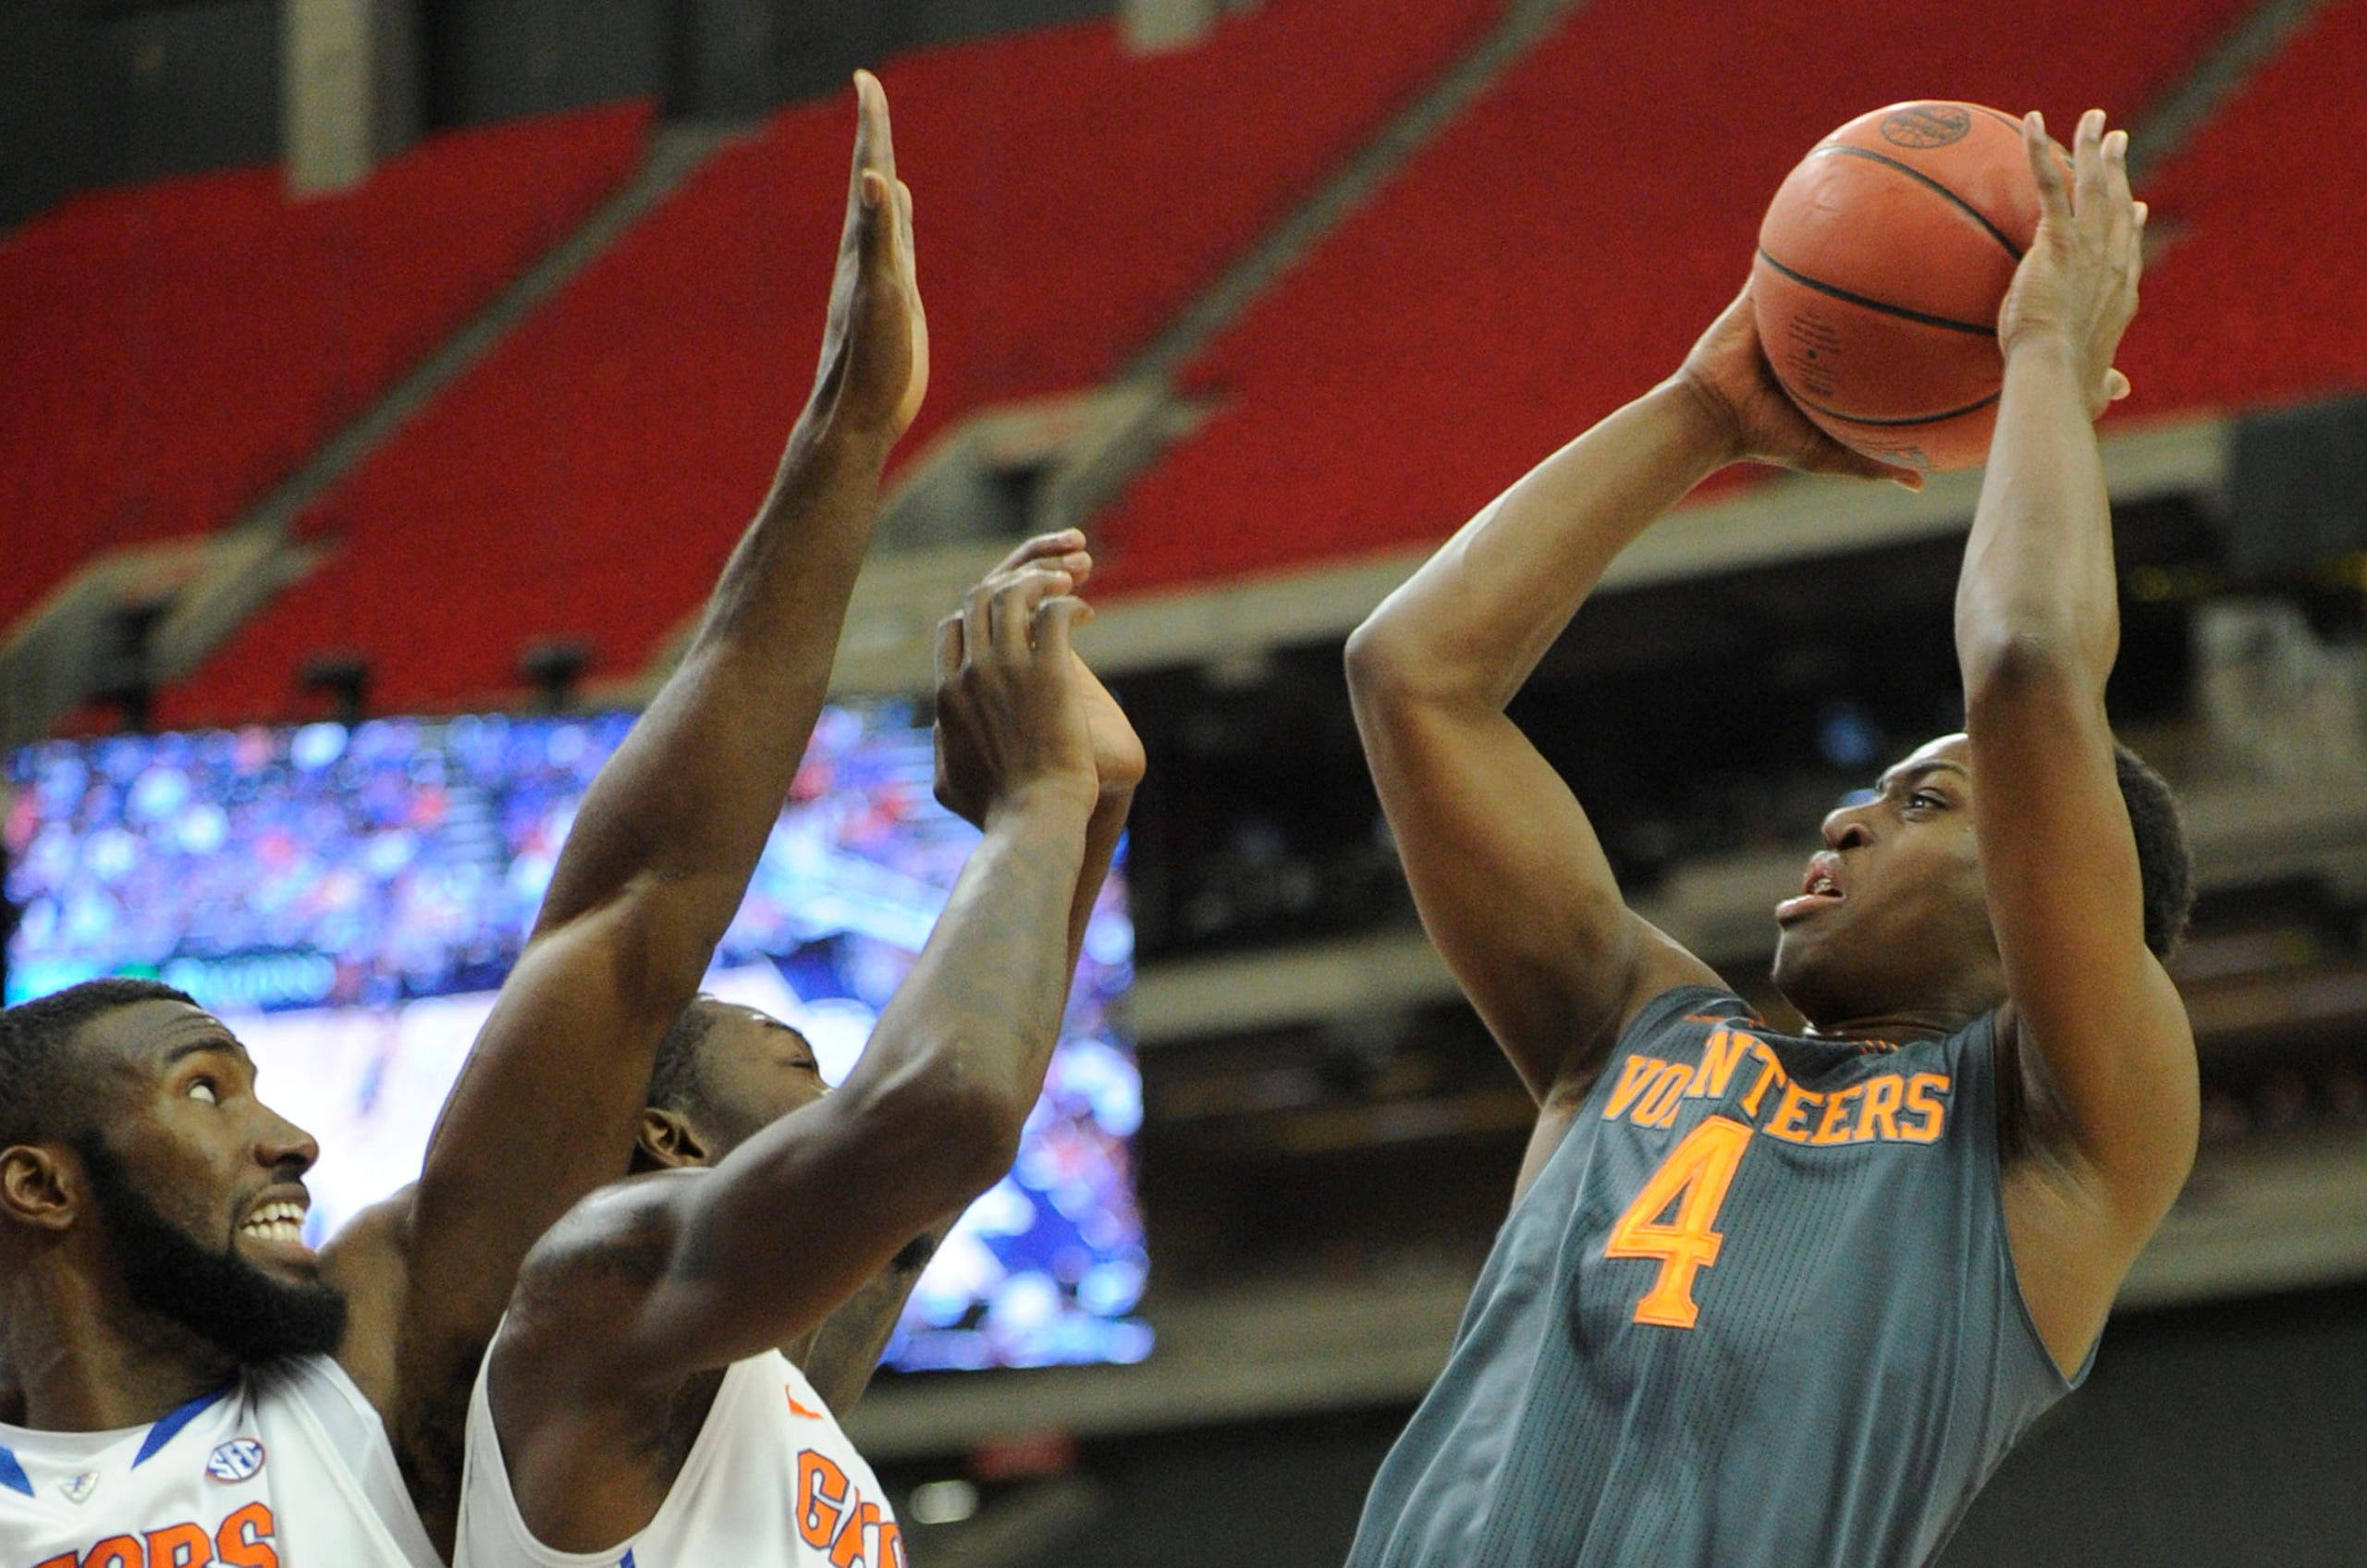 UT Vols: Tennessee vs  Florida basketball from March 15, 2014